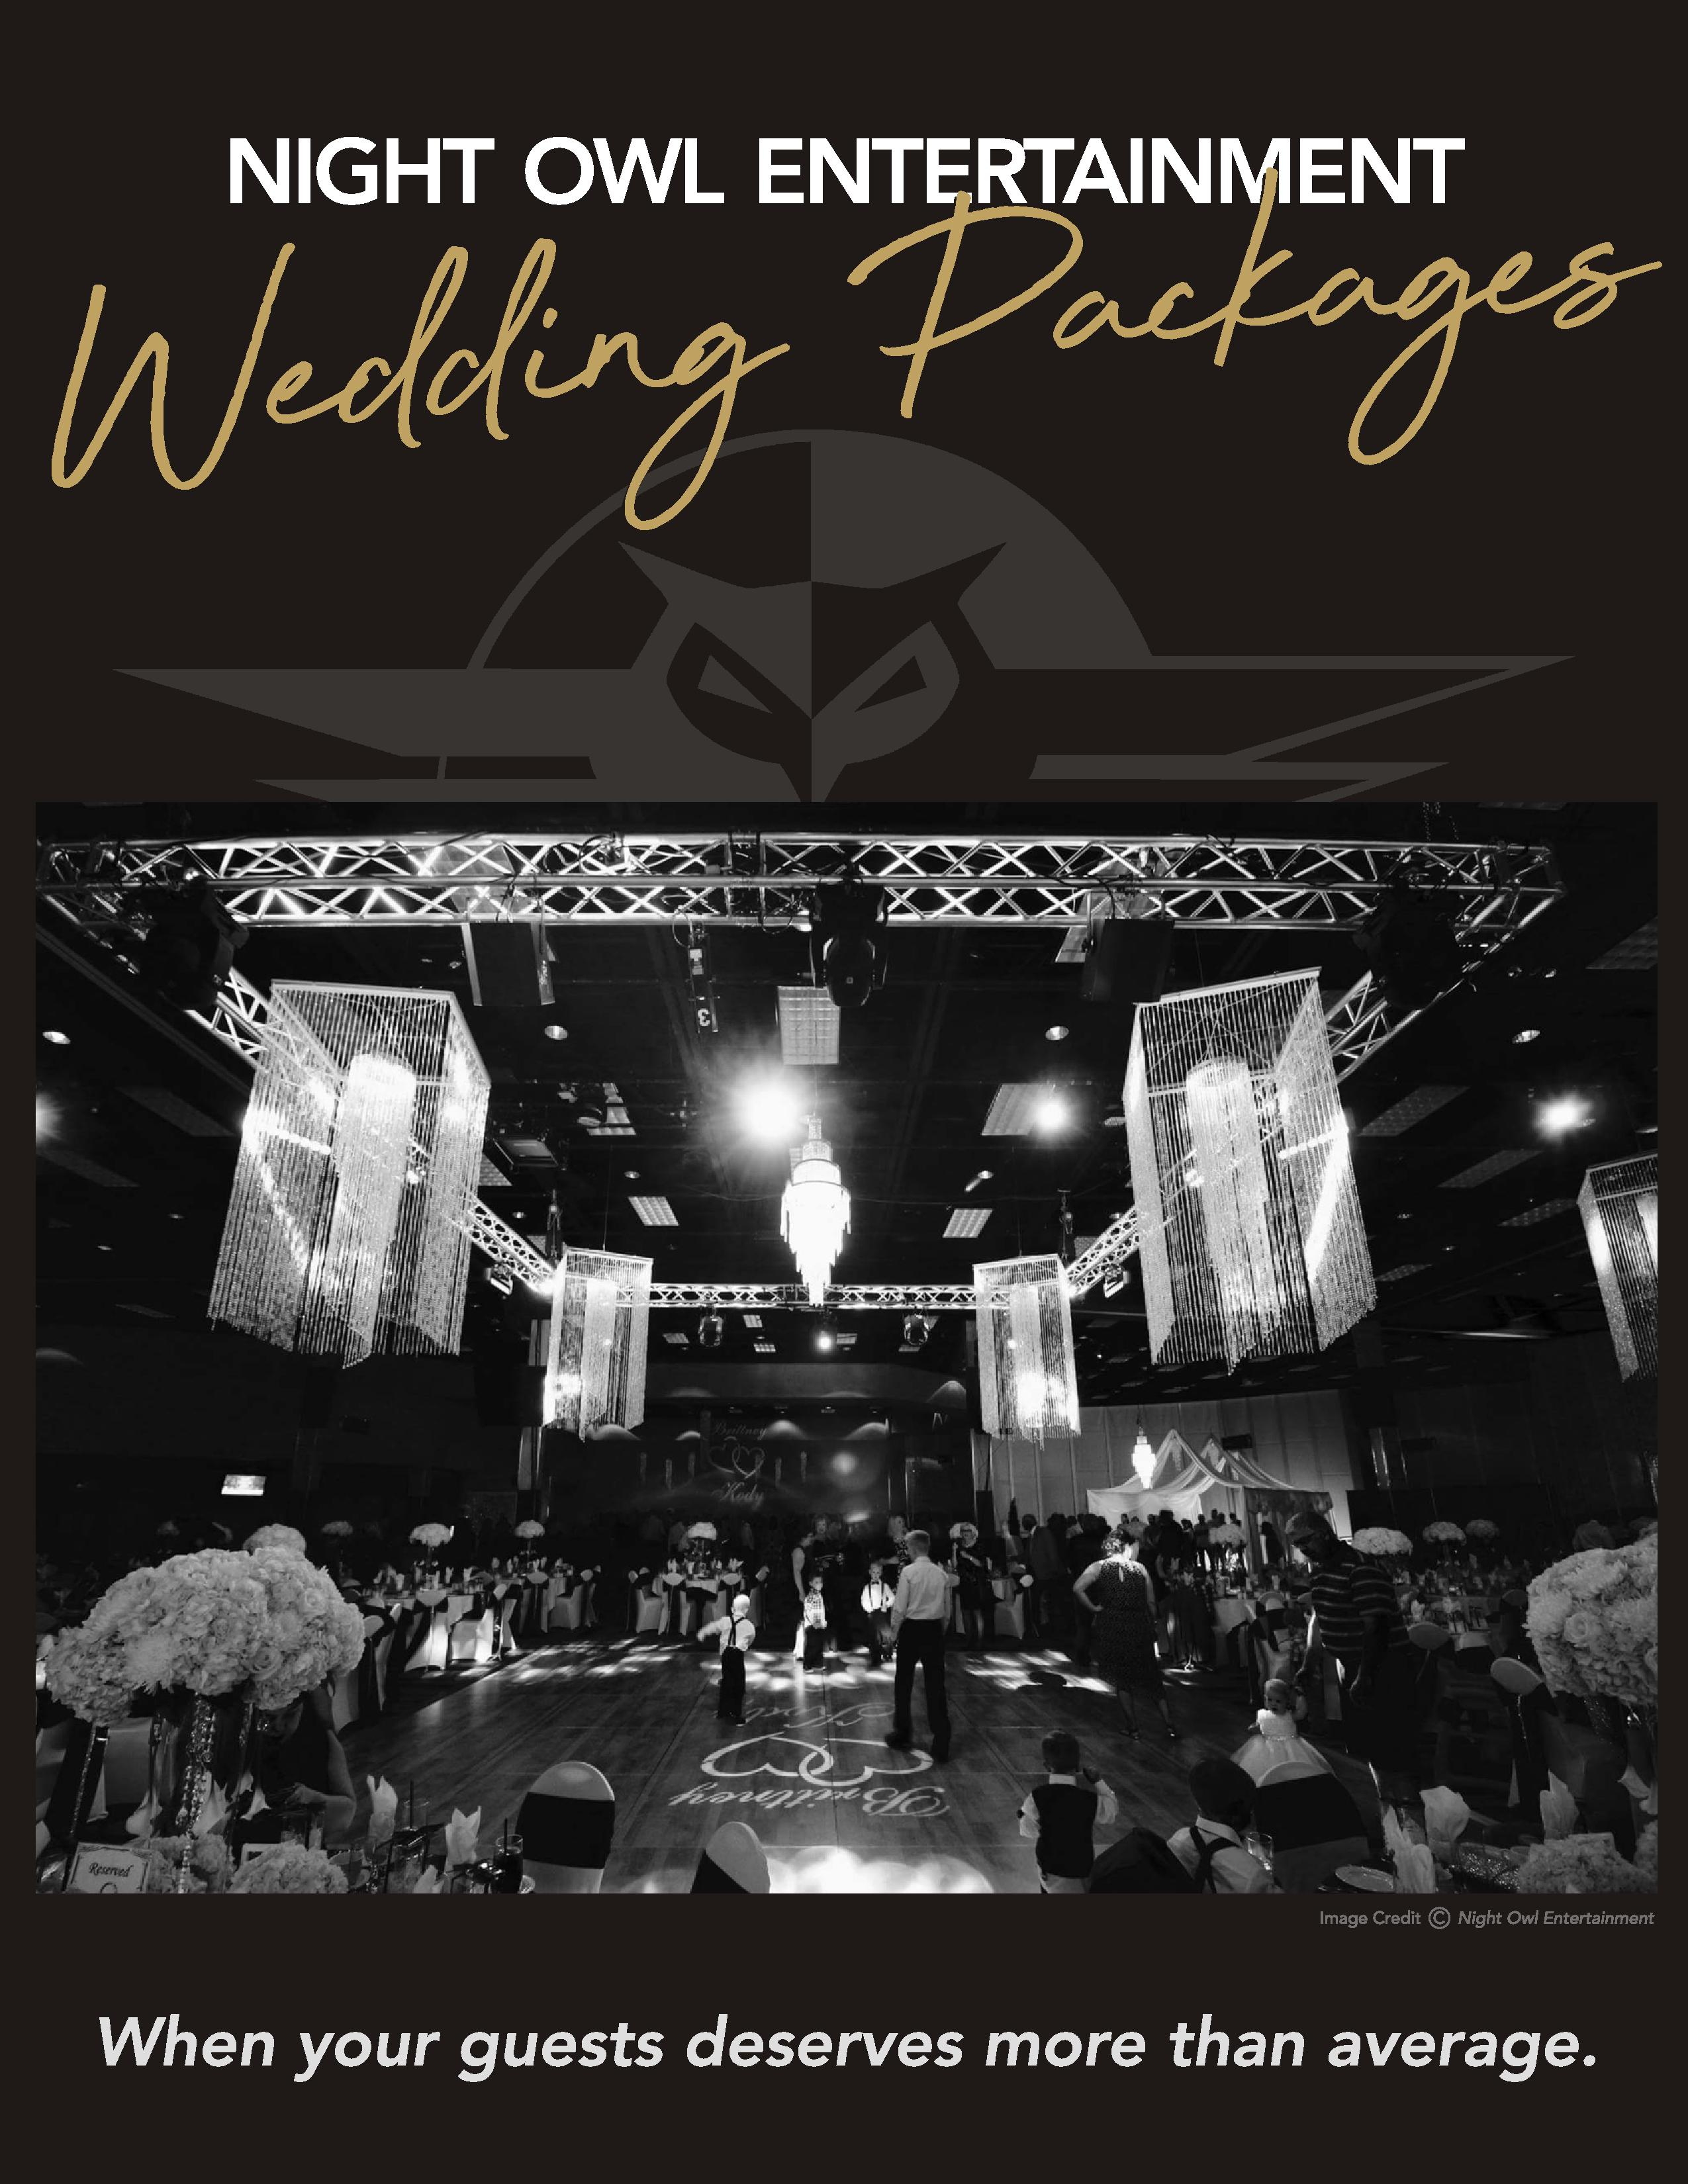 Wedding Packages - Image